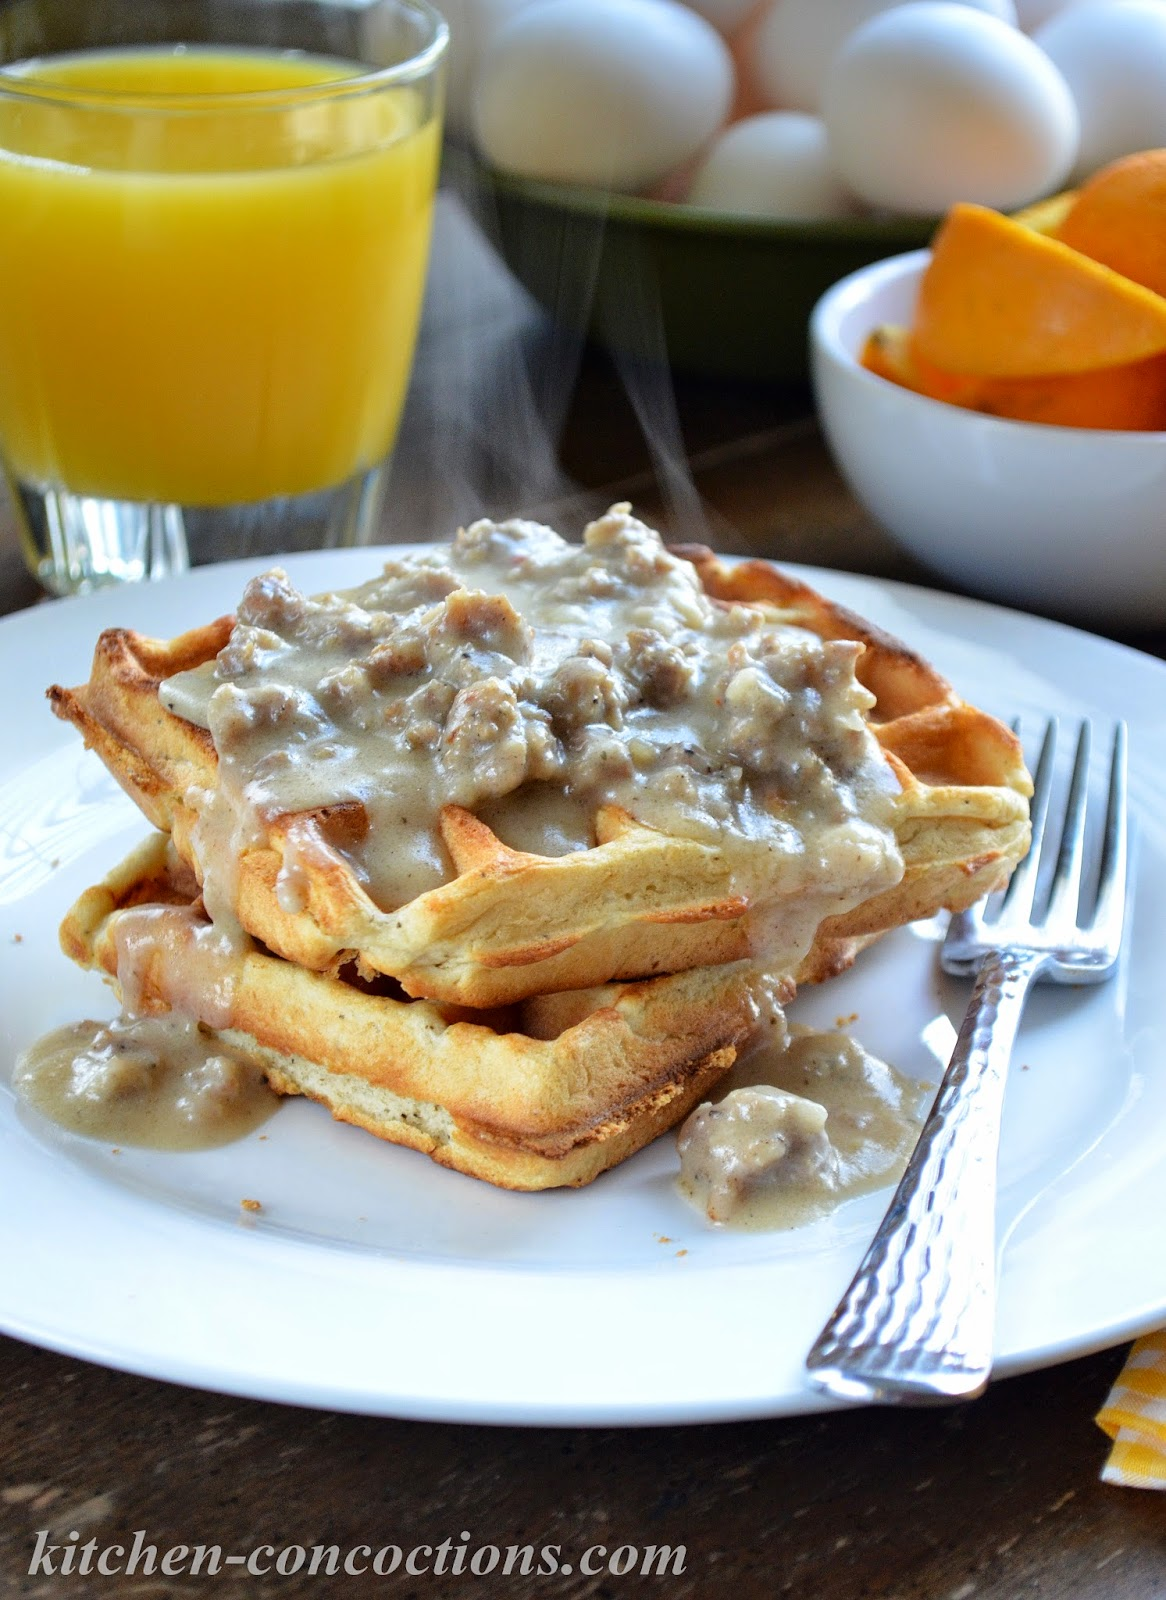 ... Concoctions: Buttermilk Biscuit Waffles with Creamy Sausage Gravy